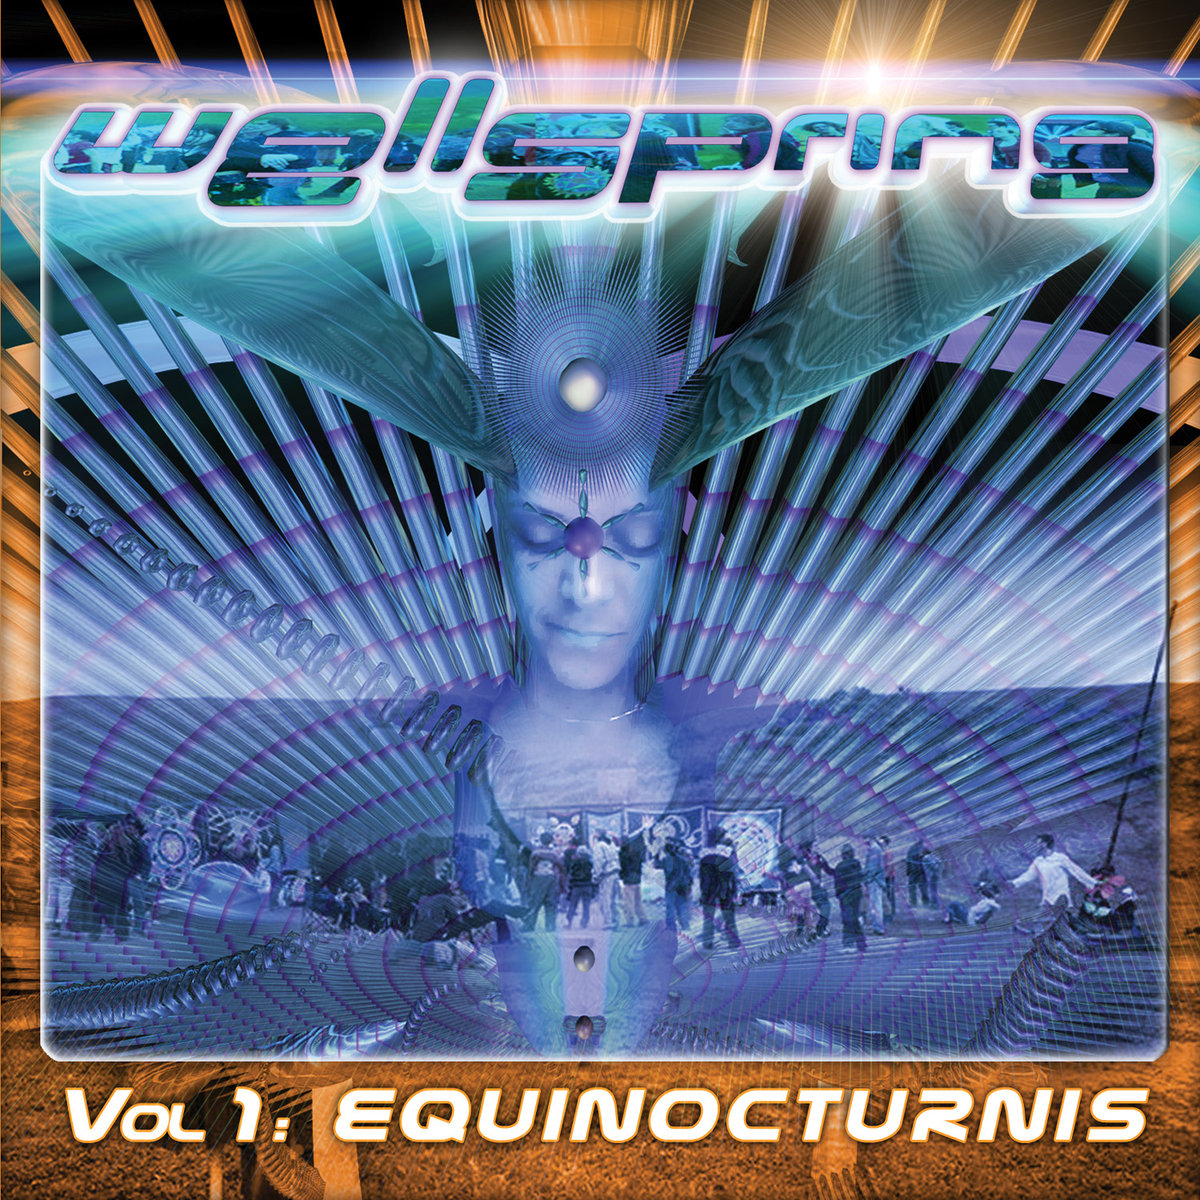 Bodhisattva 13:20 - Gung Fu Trippers @ 'Various Artists - Wellspring Vol. 1: Equinocturnis' album (electronic, goa)